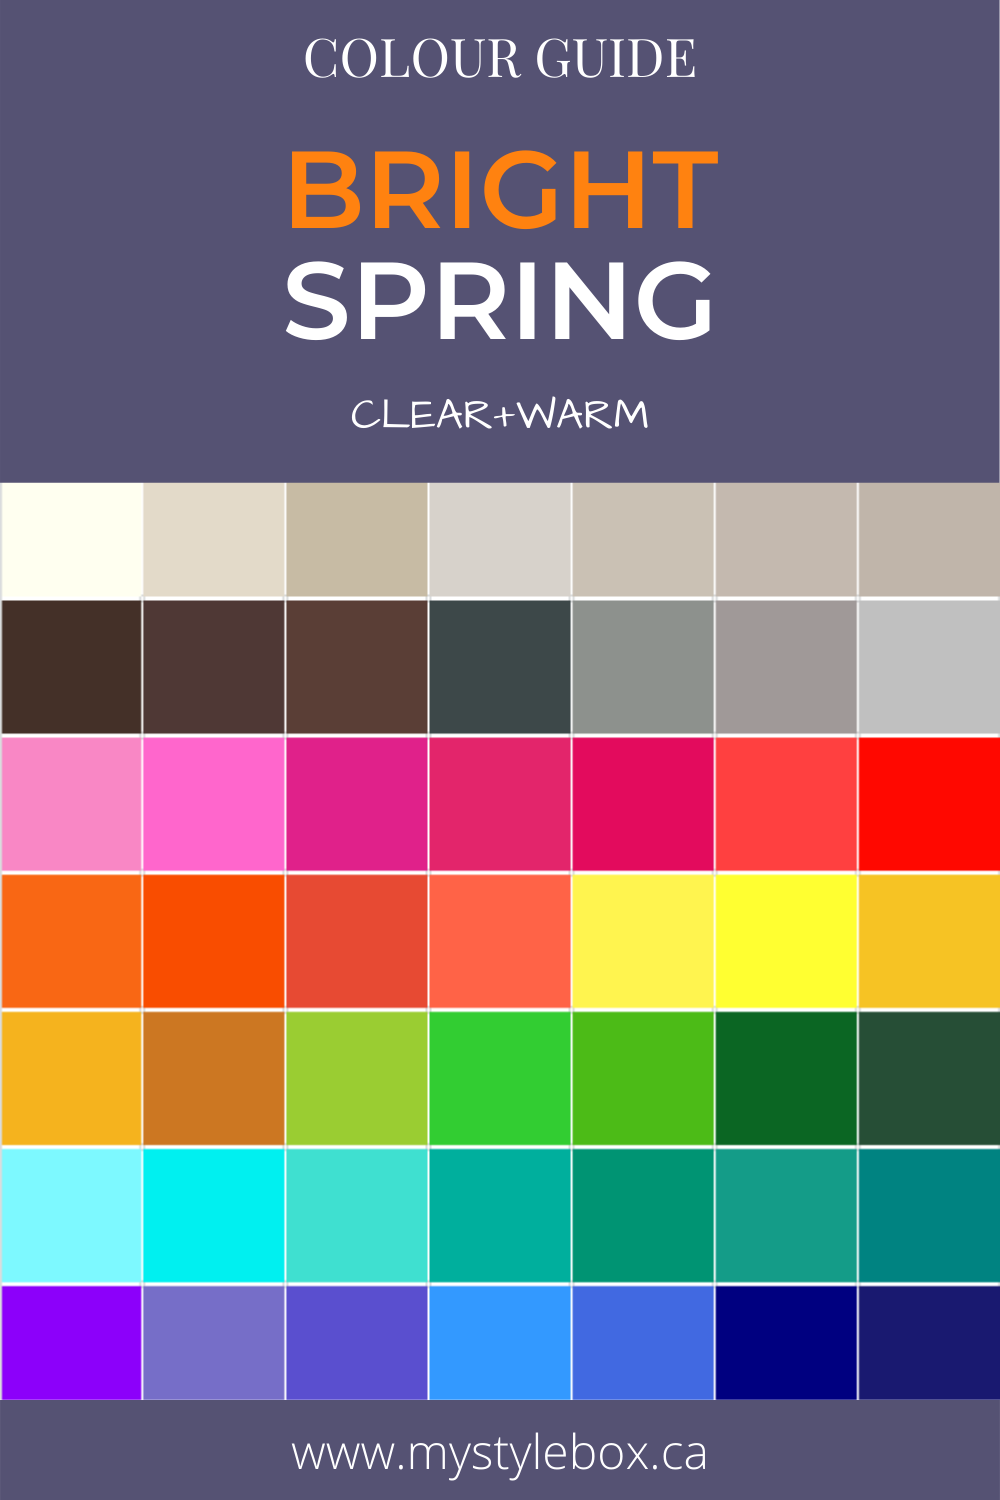 Bright Spring Colour Guide